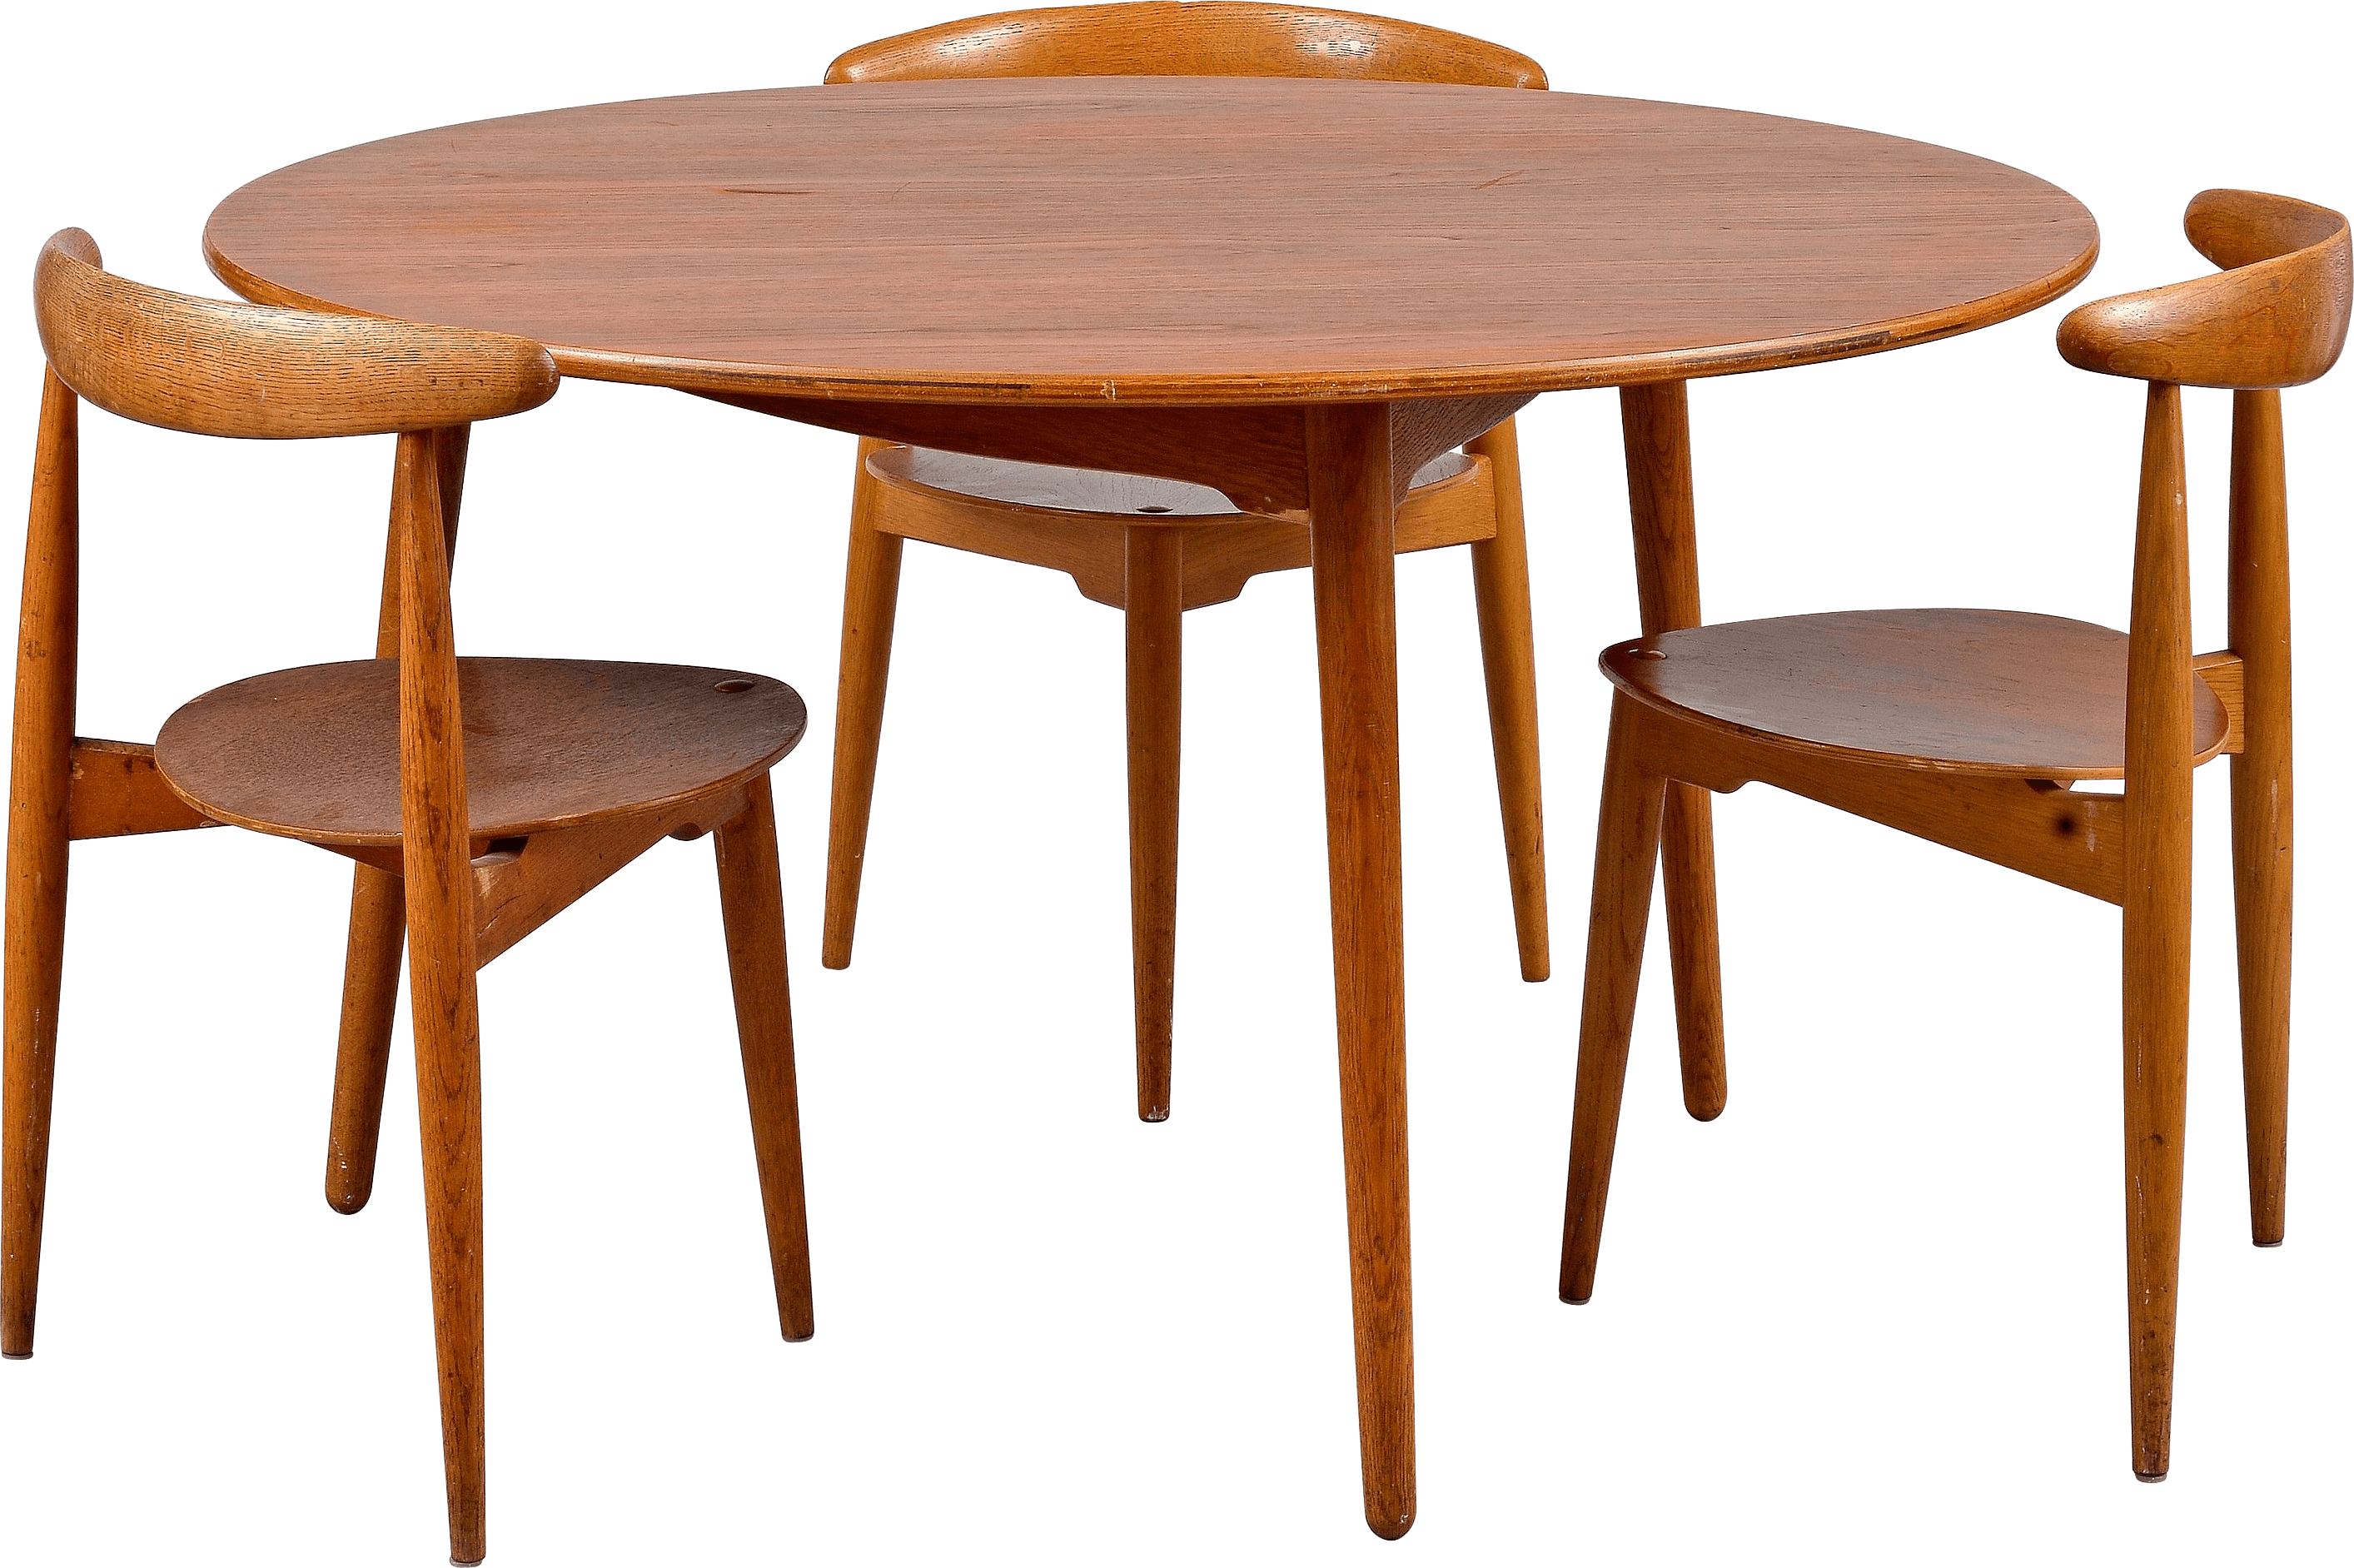 Table and chairs png. Transparent images pluspng